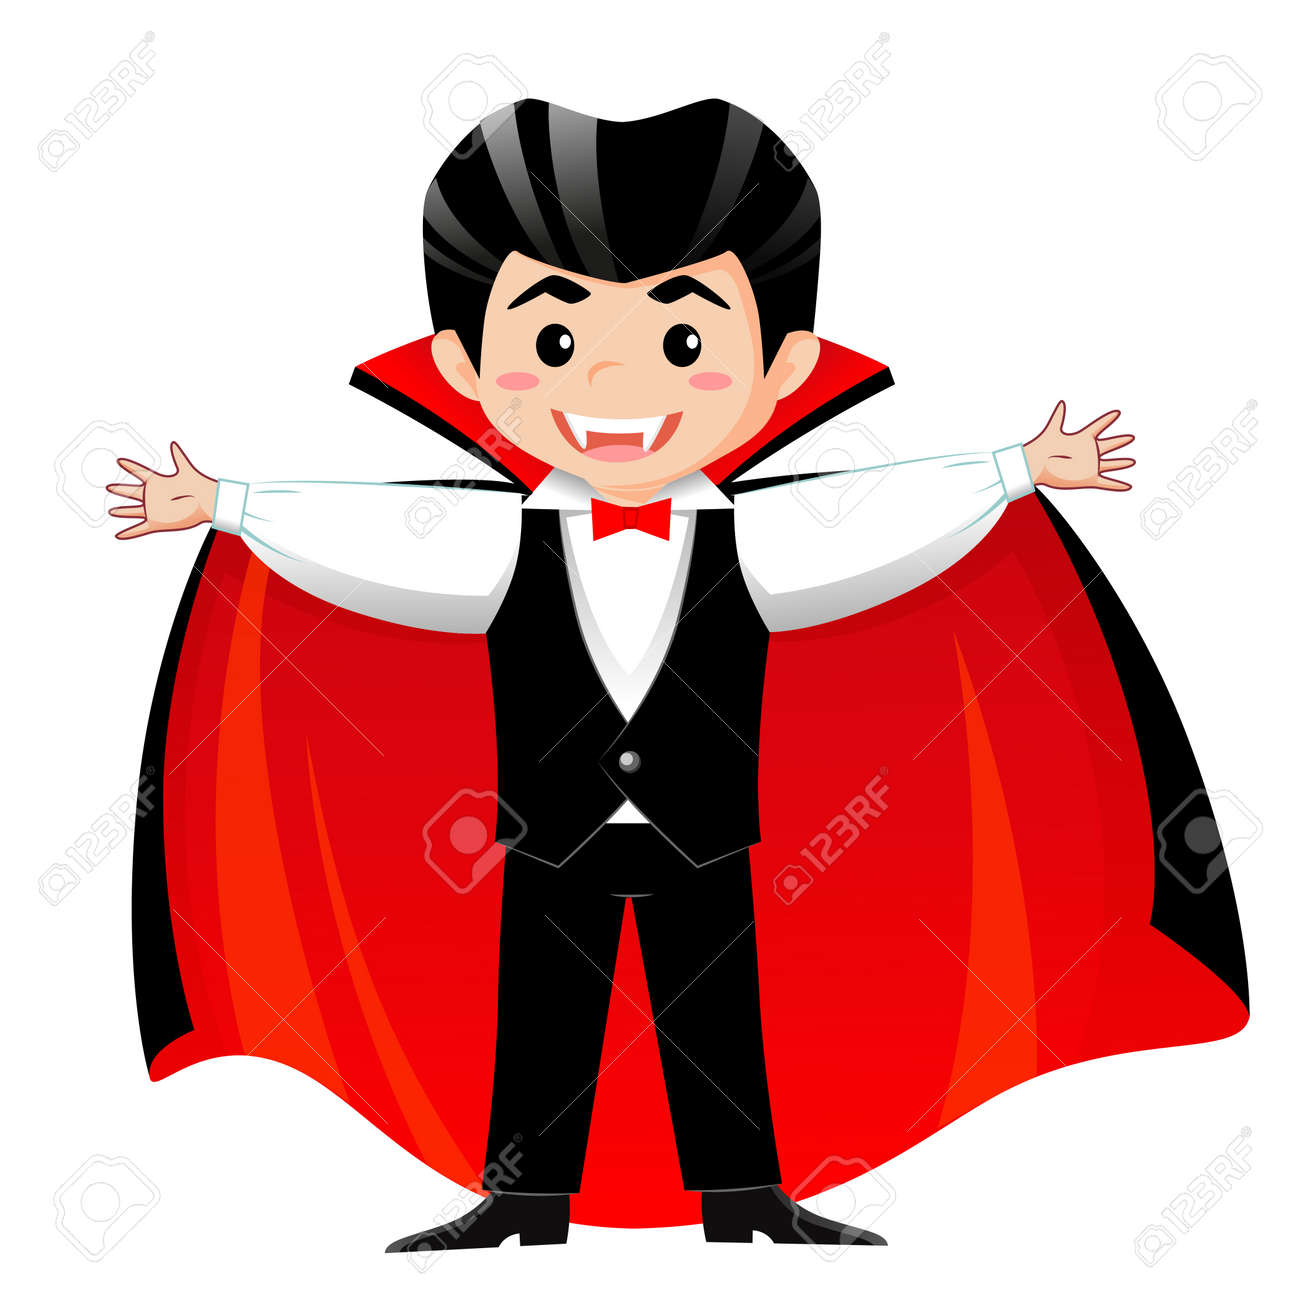 Count Dracula Vampire Boy In Halloween Costume Royalty Free Cliparts Vectors And Stock Illustration Image 87823265